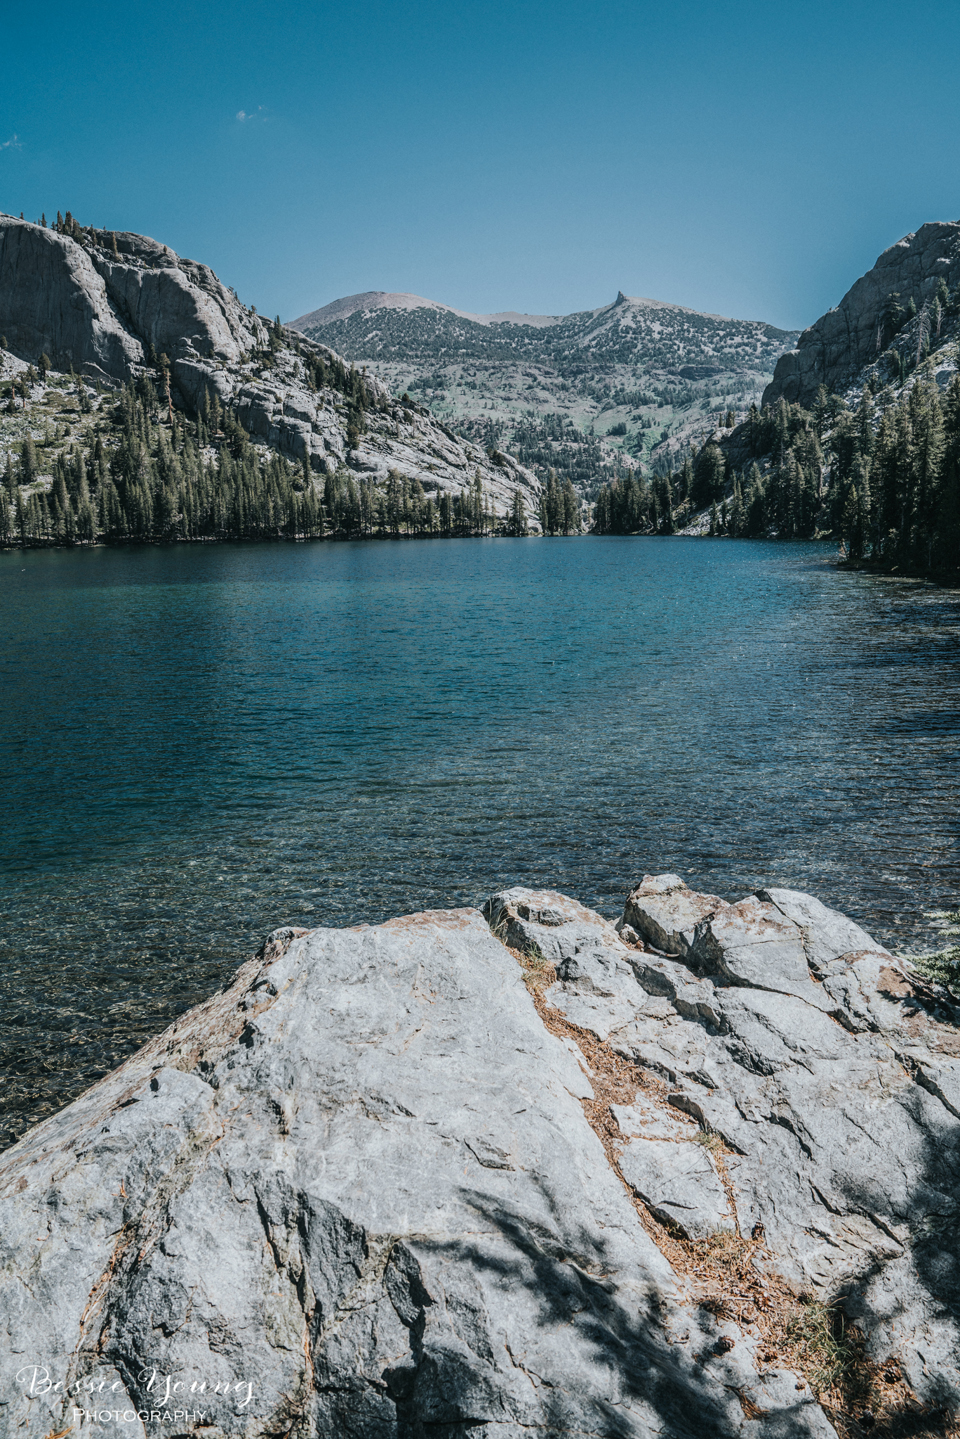 Ansel Adams Wilderness Backpacking. This is Rosalie Lake along the John Muir Trail. Landscape Photograph of a High Mountain lake photographed by Bessie Young